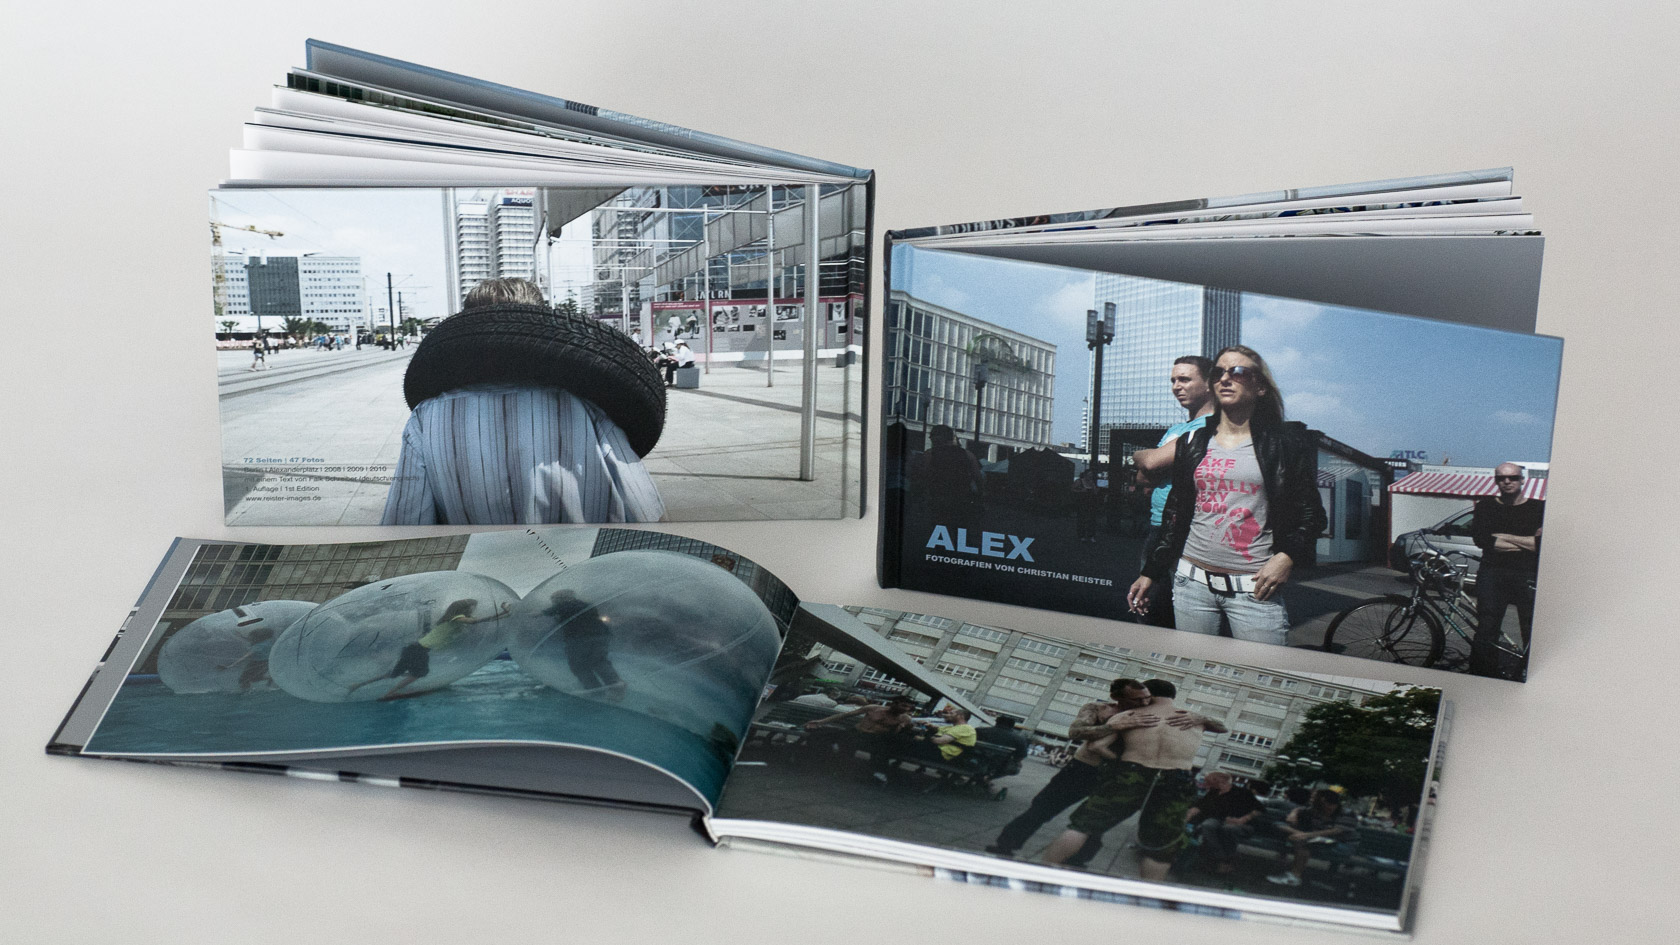 ALEX Photobook by Christian Reister